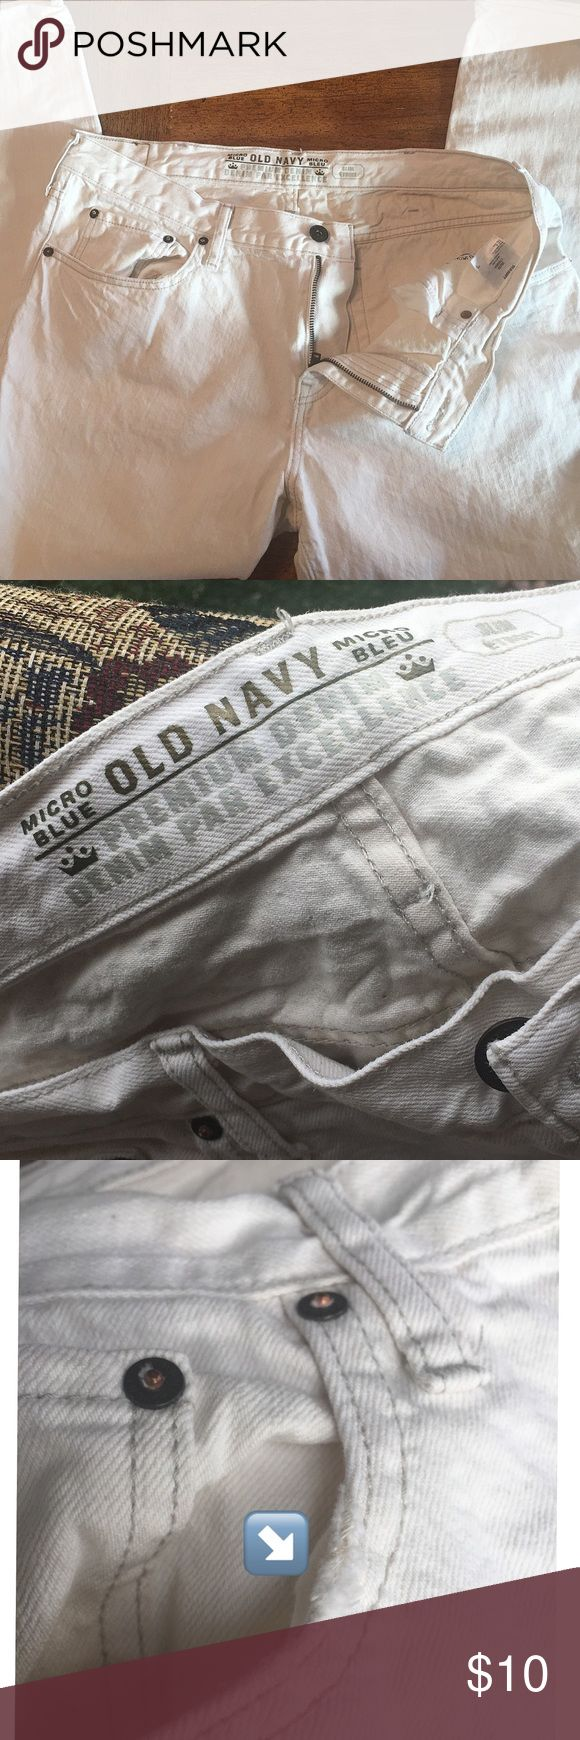 OLD NAVY Premium Denim Cargo Pants  38X30 White Denim. Rugged construction for rugged men   Used with some sign of wear and some small, faint spots. Old Navy Pants Chinos & Khakis